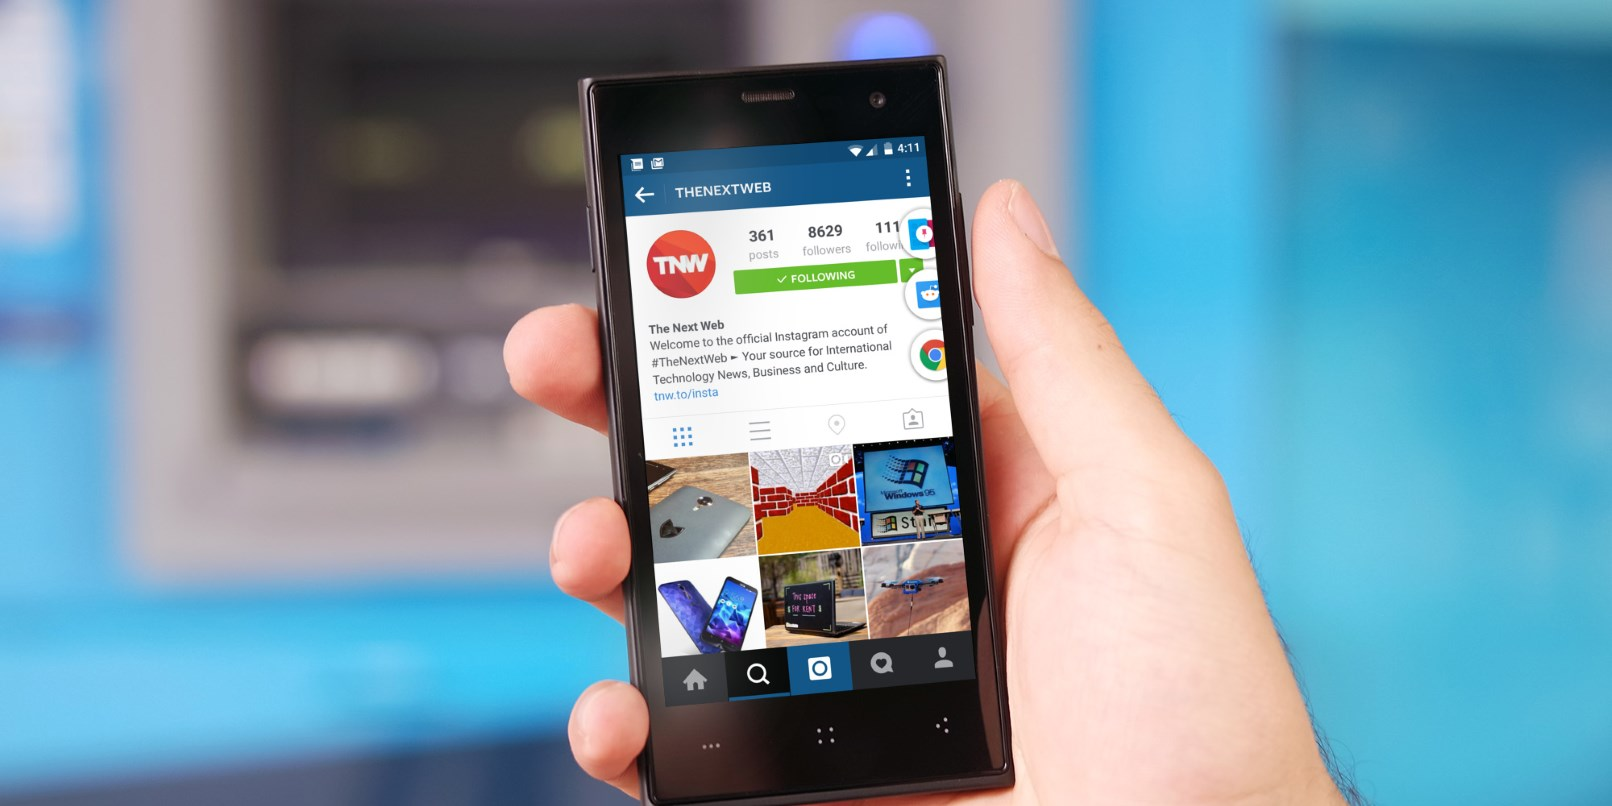 Pintasking brings multi-tasking to just about any Android device